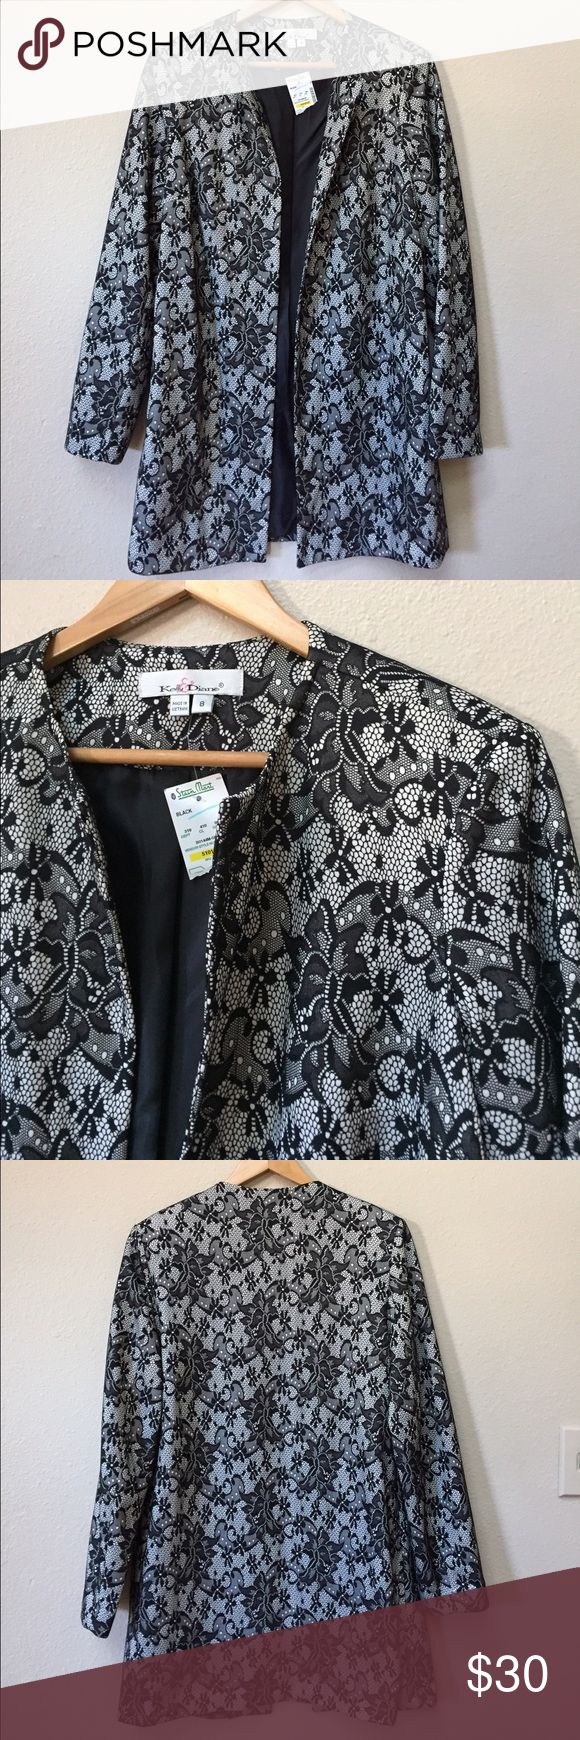 "NWT black lace lightweight trench coat NWT black lace lightweight trench coat. Size 8. 100% polyester. Approximate length from shoulder is 33"" and armpit to armpit across the back is 21"". There are no zippers or closures in the front. No pockets. Jackets & Coats Trench Coats"